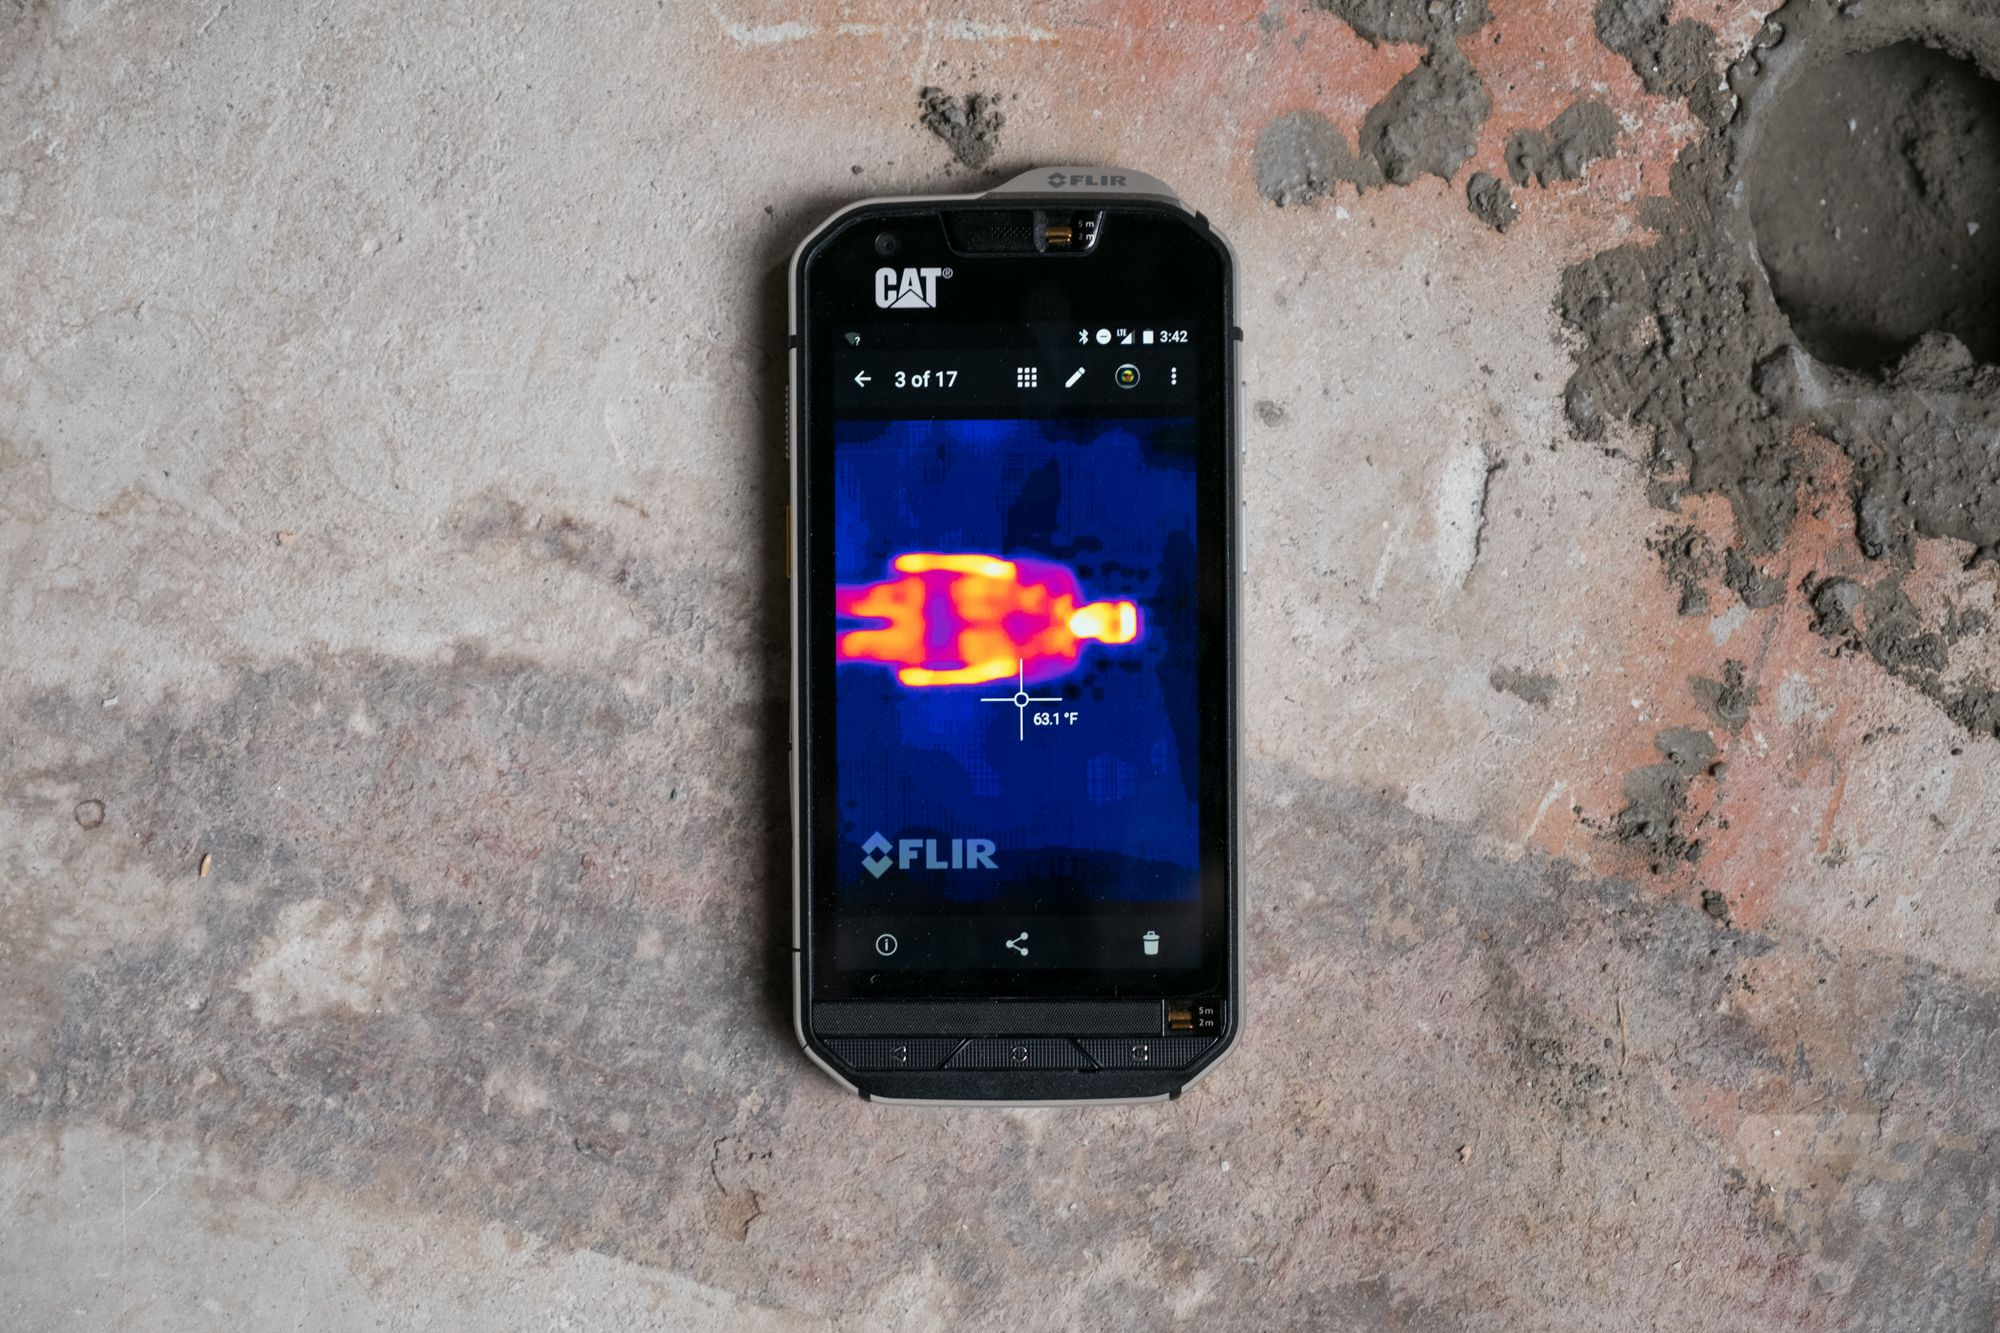 Cat S60 review: a rugged phone that can see in the dark ...